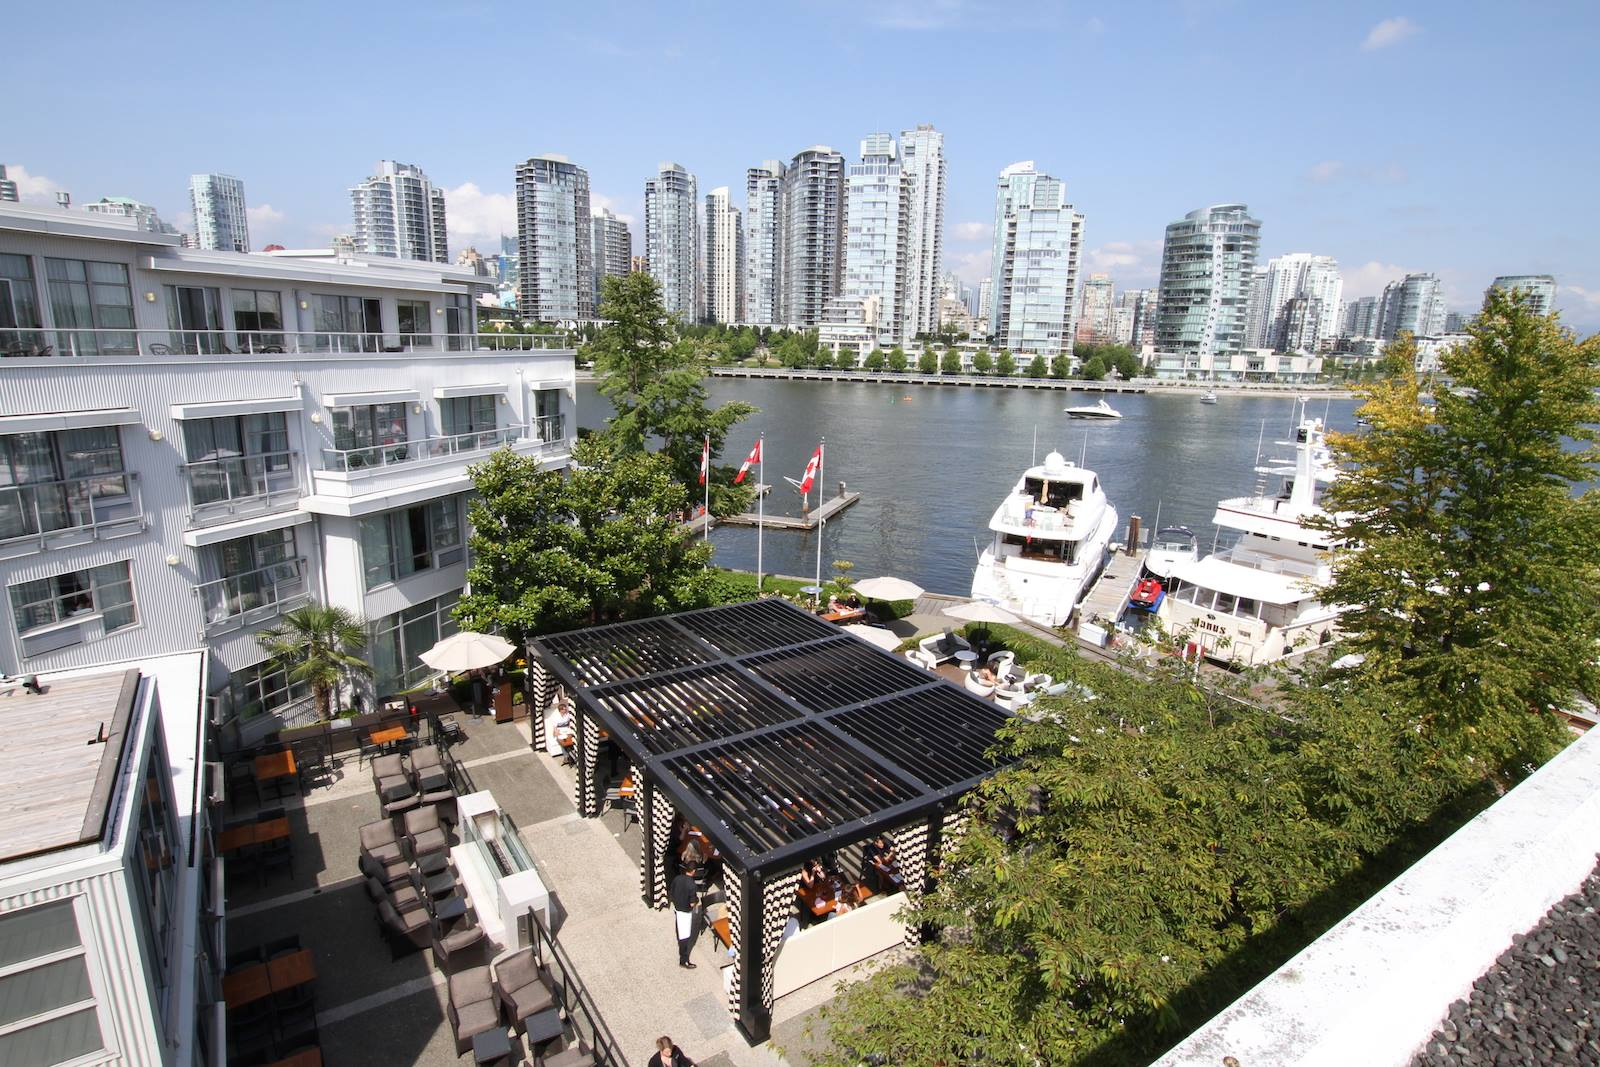 Dockside-restaurant-patio-season